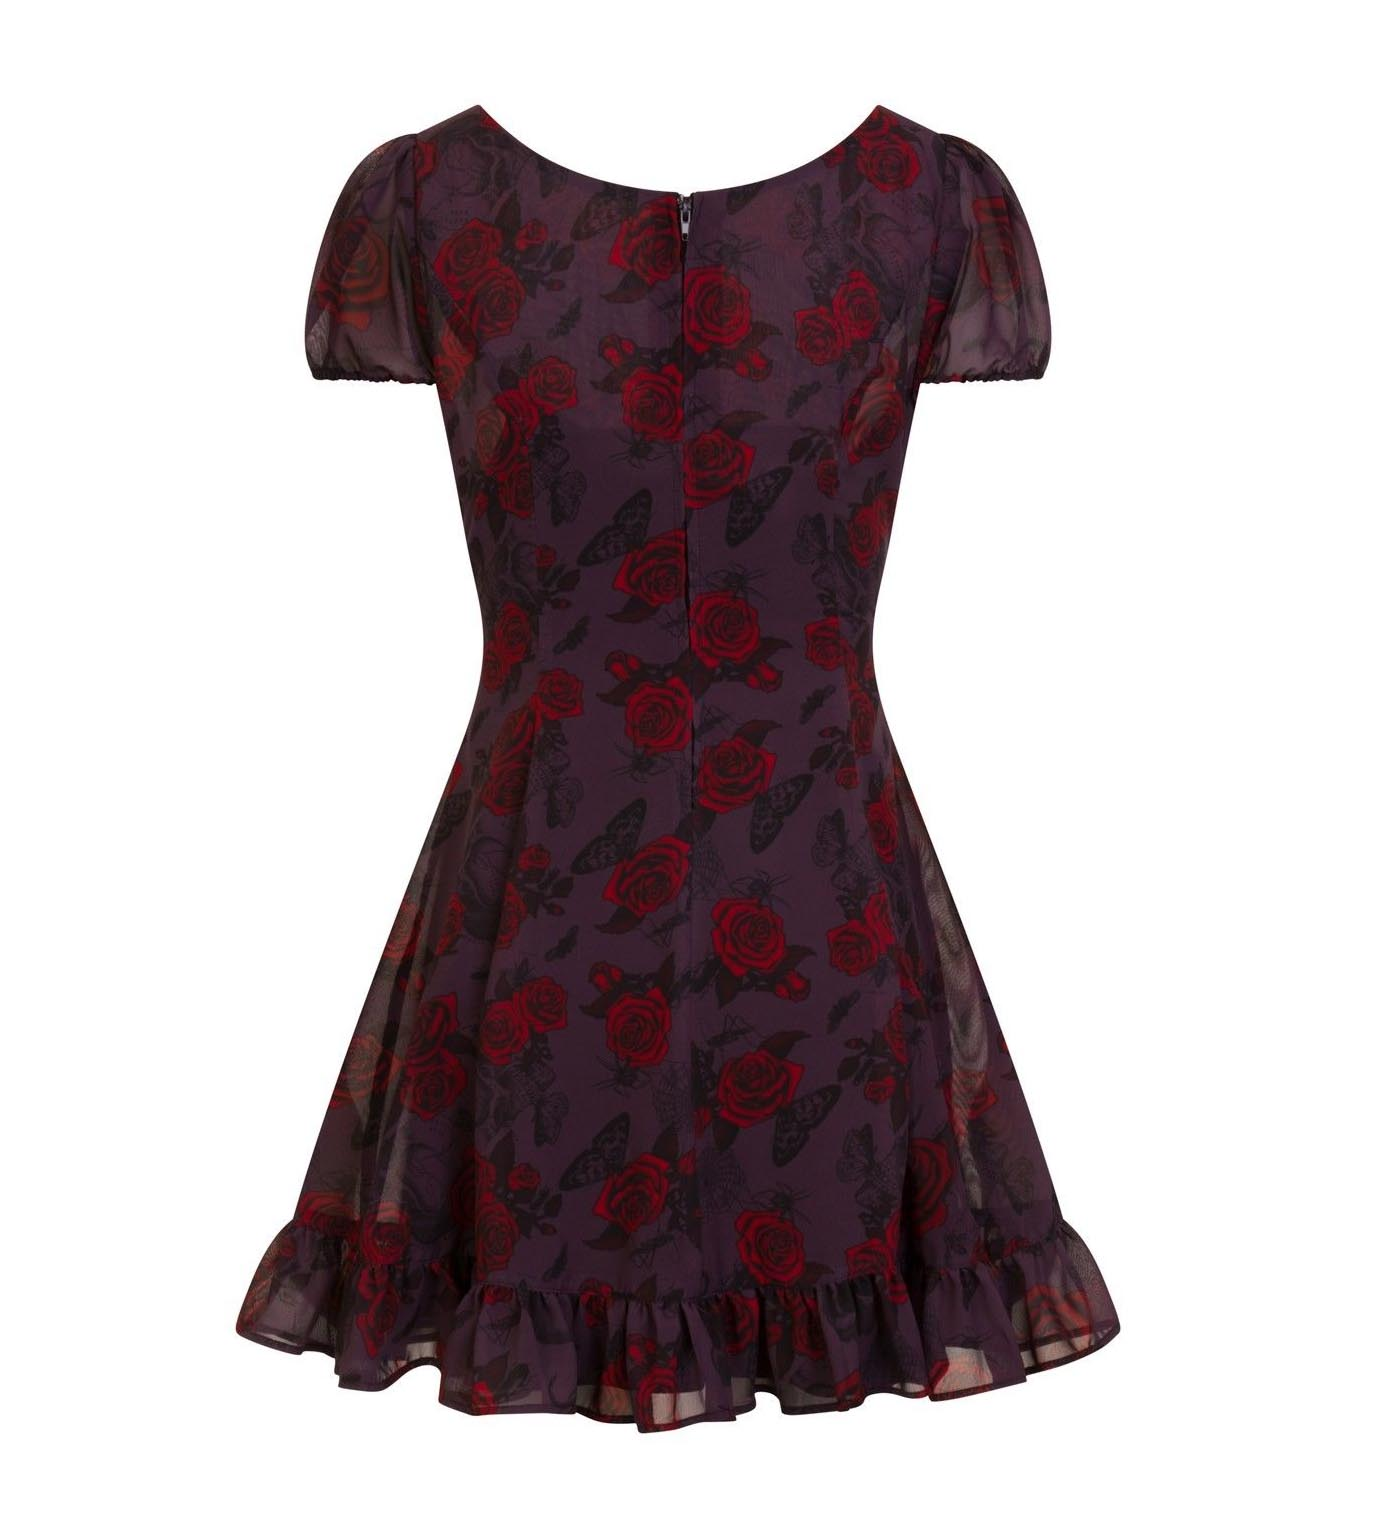 Hell-Bunny-Goth-Floaty-Mini-Dress-BUGS-amp-ROSES-Skulls-Butterfly-Purple-All-Sizes thumbnail 13